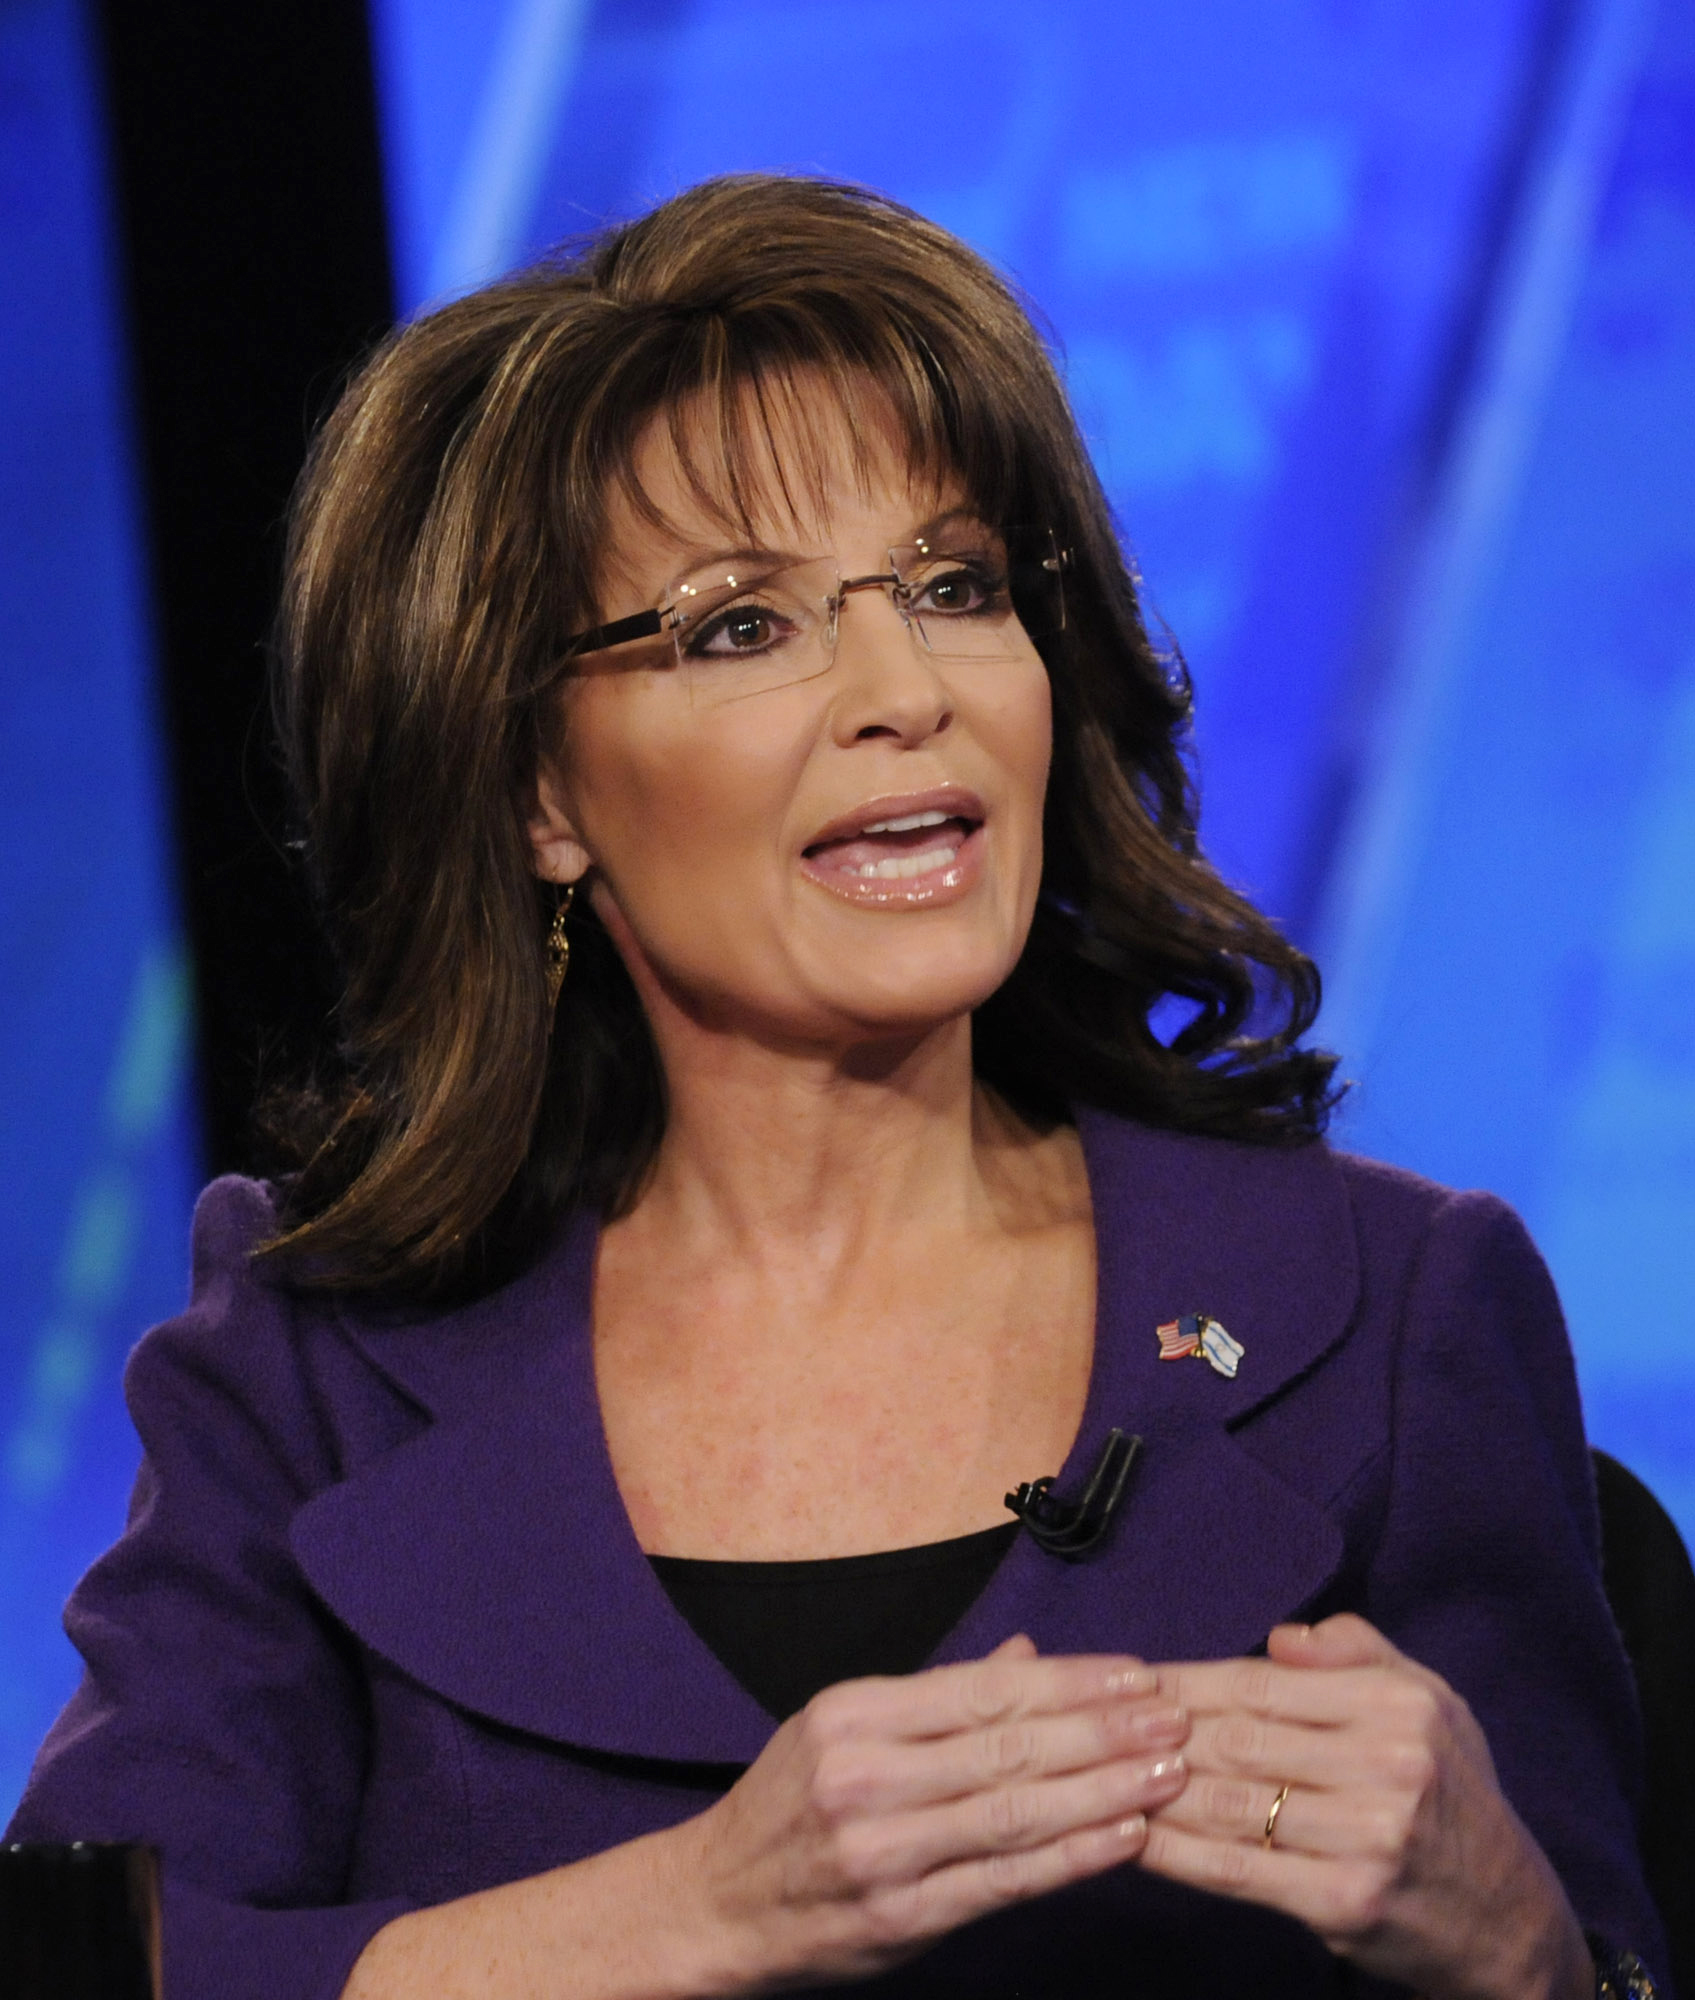 Sarah Palin: Sarah Palin Is Out As A Fox News Channel Contributor